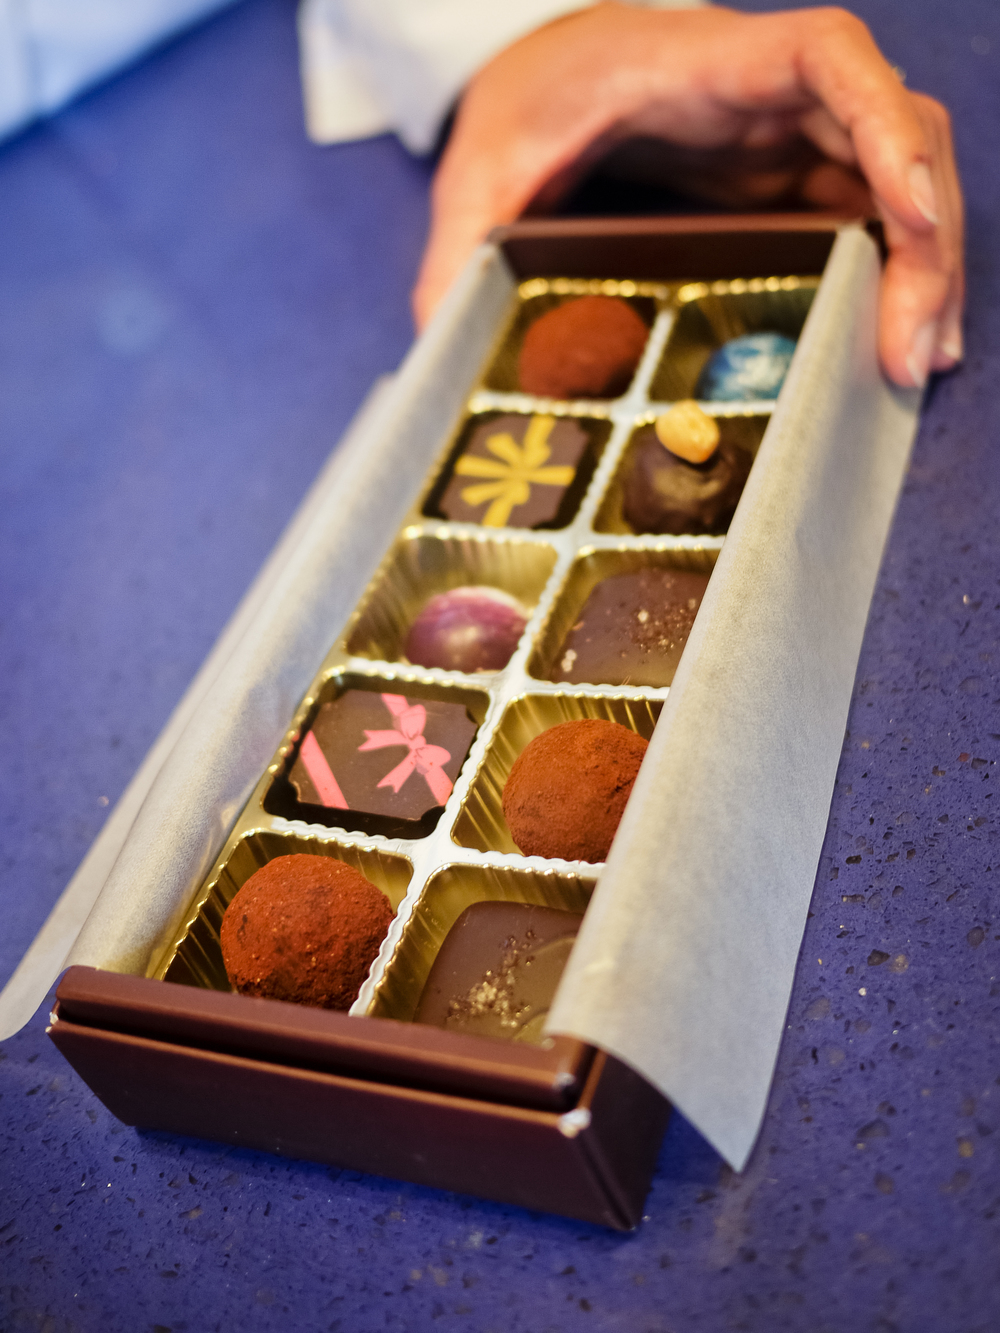 A build-your-own box of chocolates.